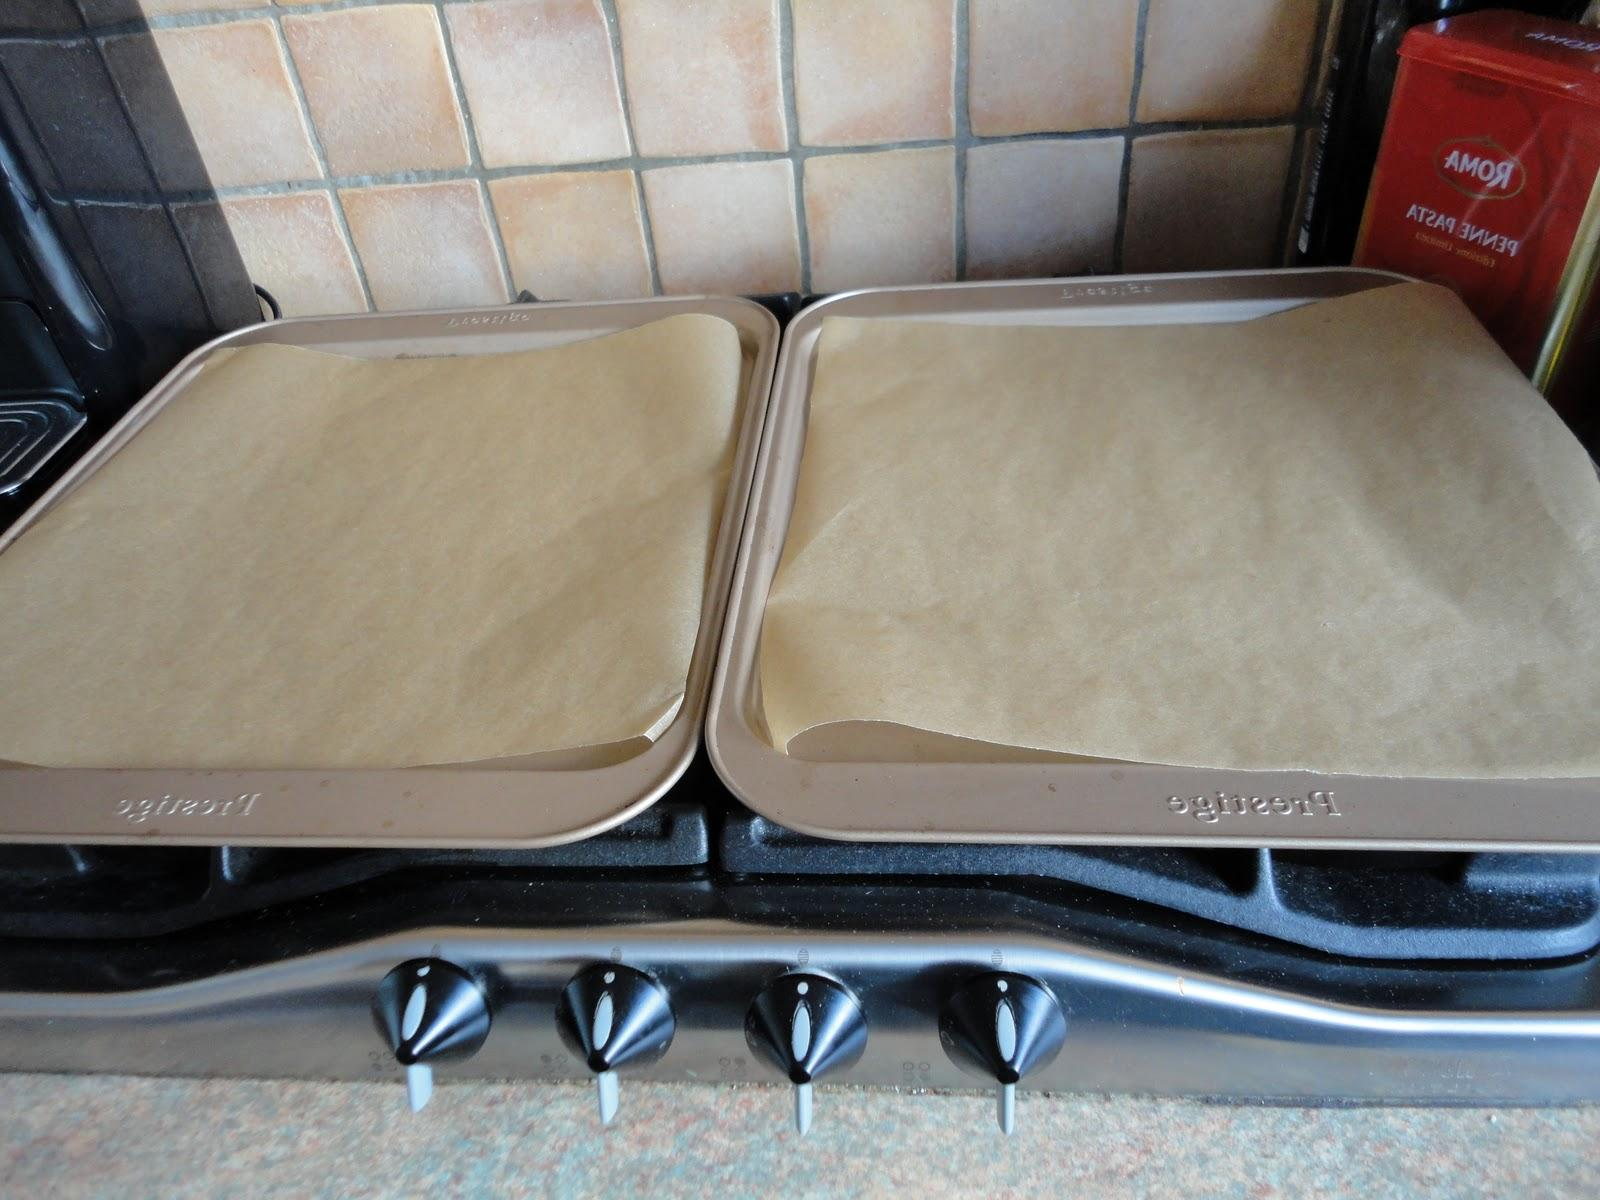 line two baking trays with